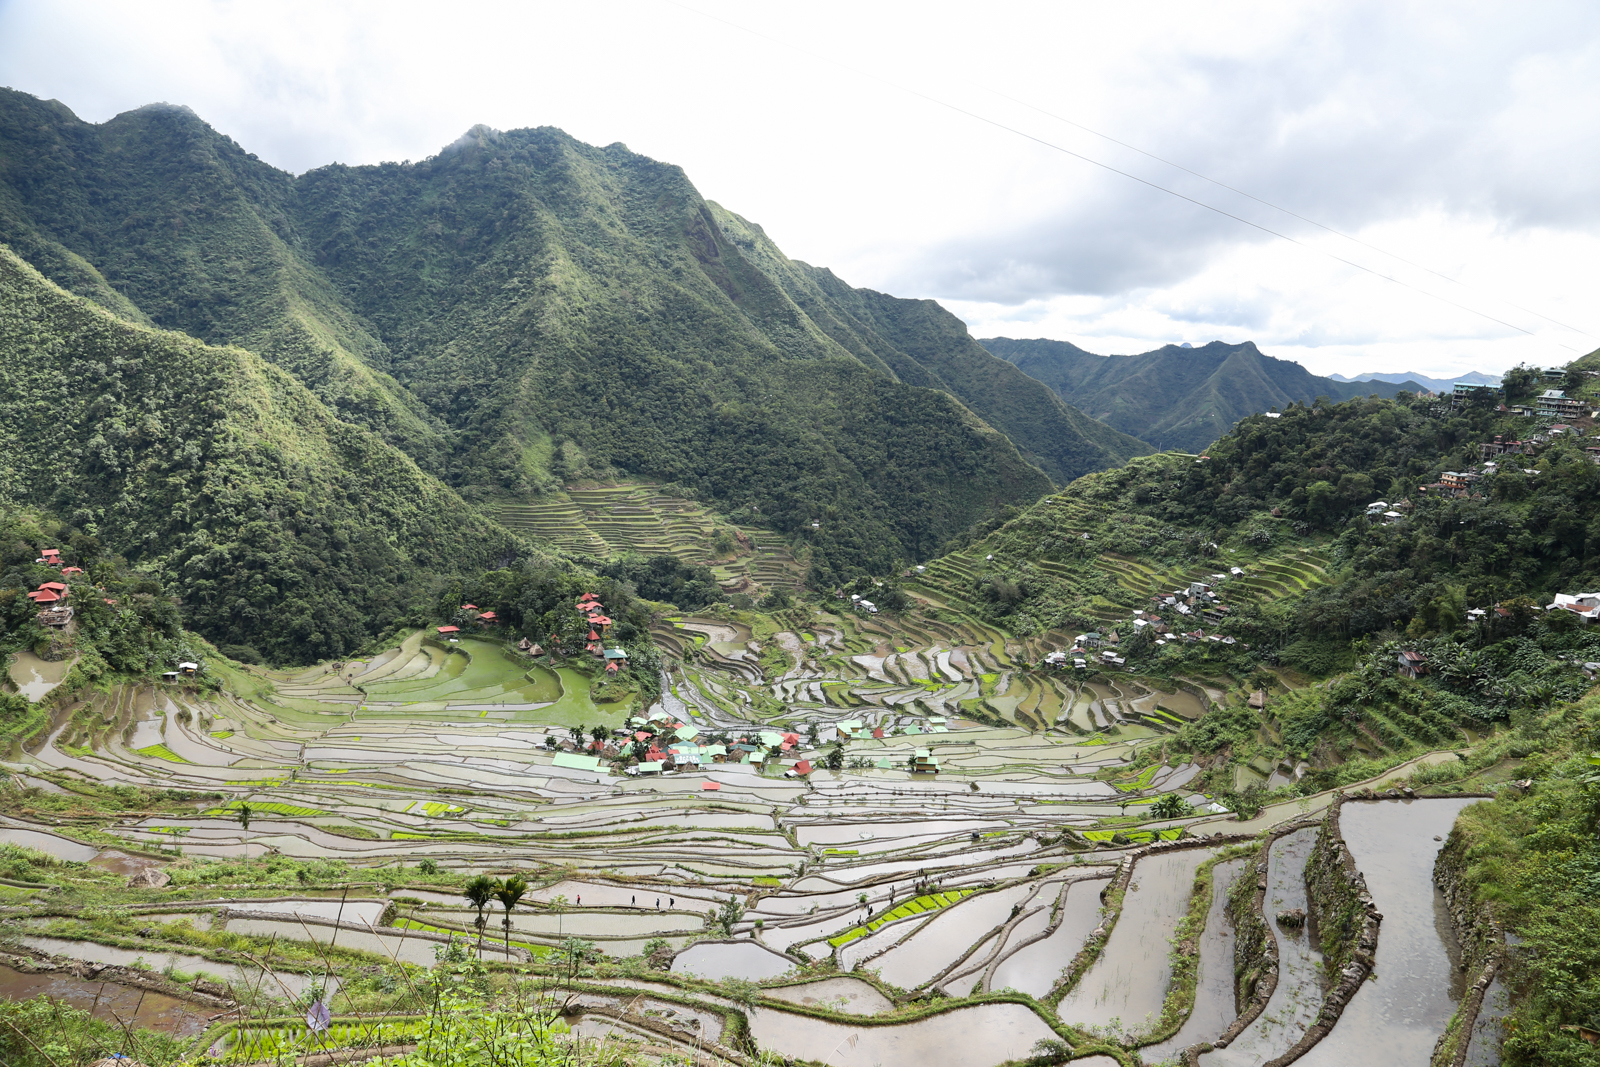 The rice terraces of Batad is a UNESCO World Heritage site